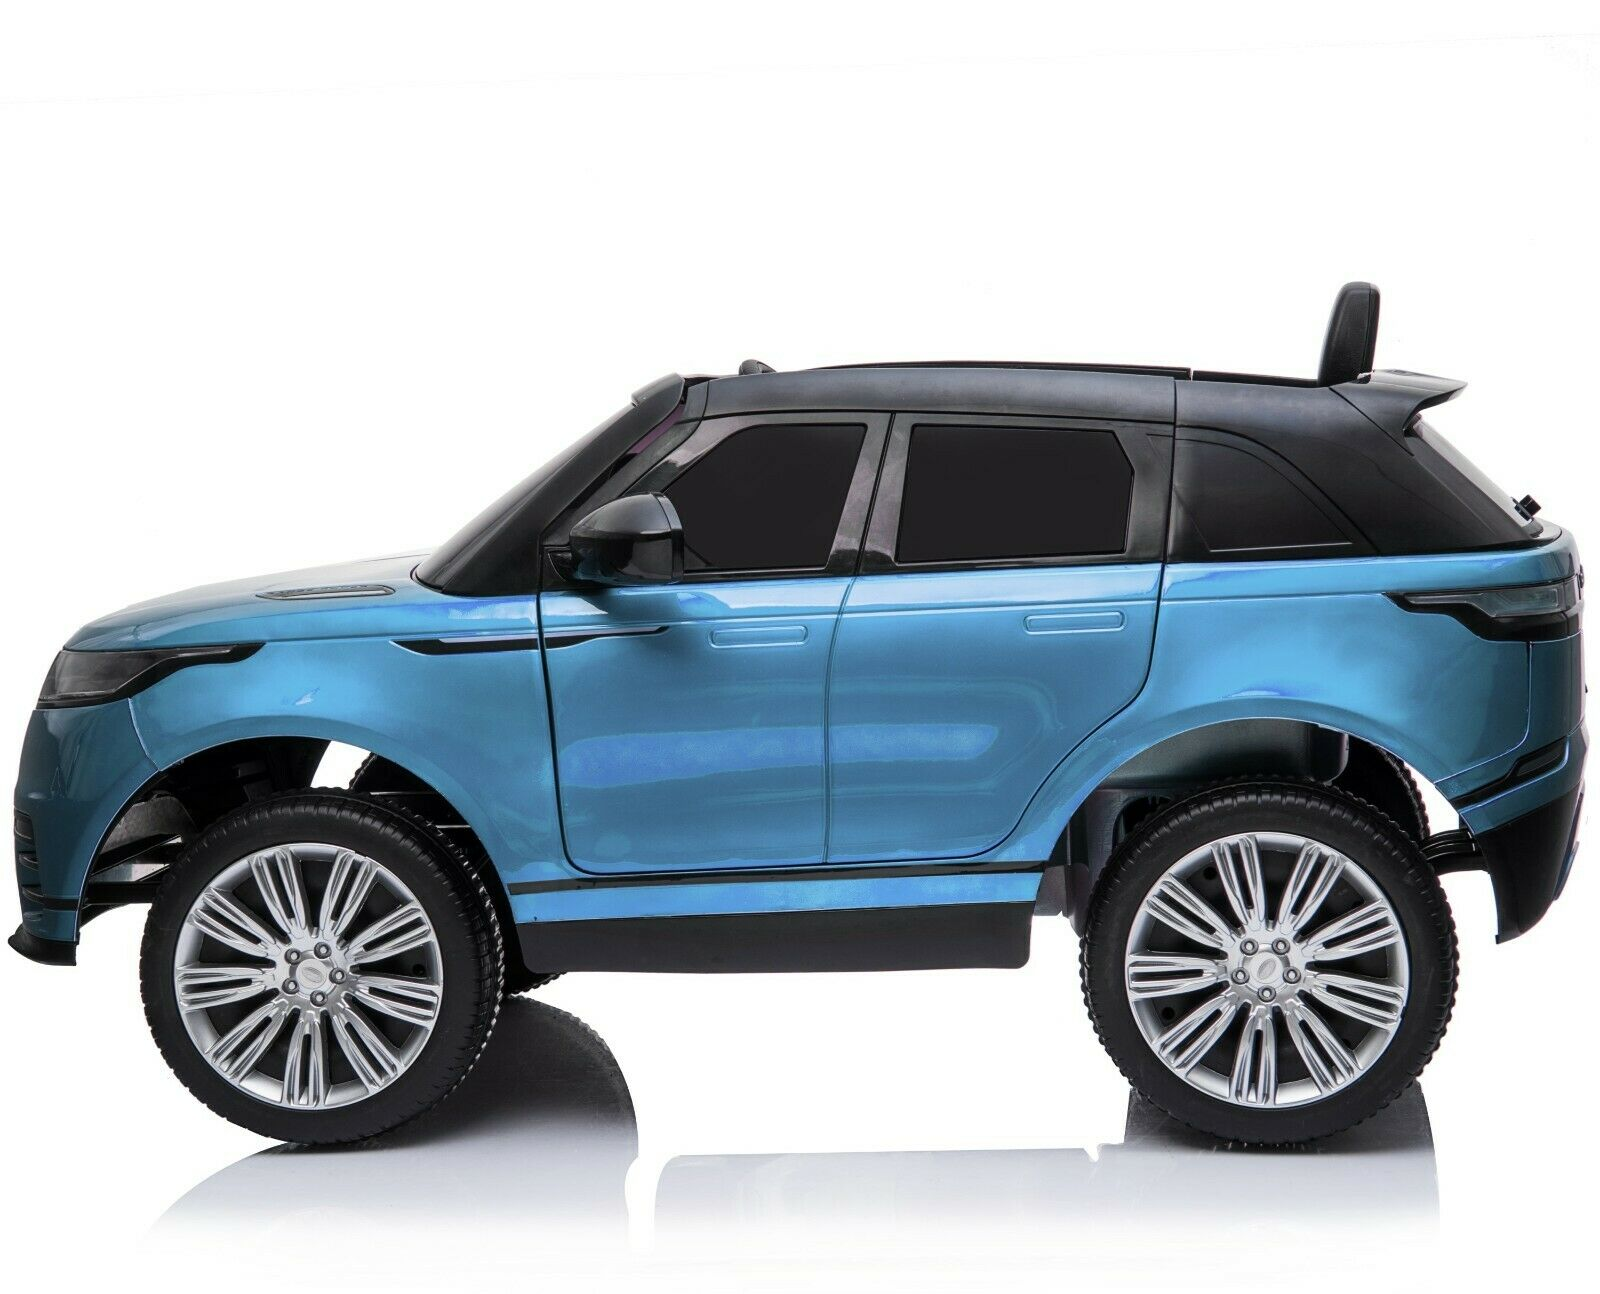 Licensed Range Rover Velar 12V Kids Ride on Car with Remote - Metallic Blue